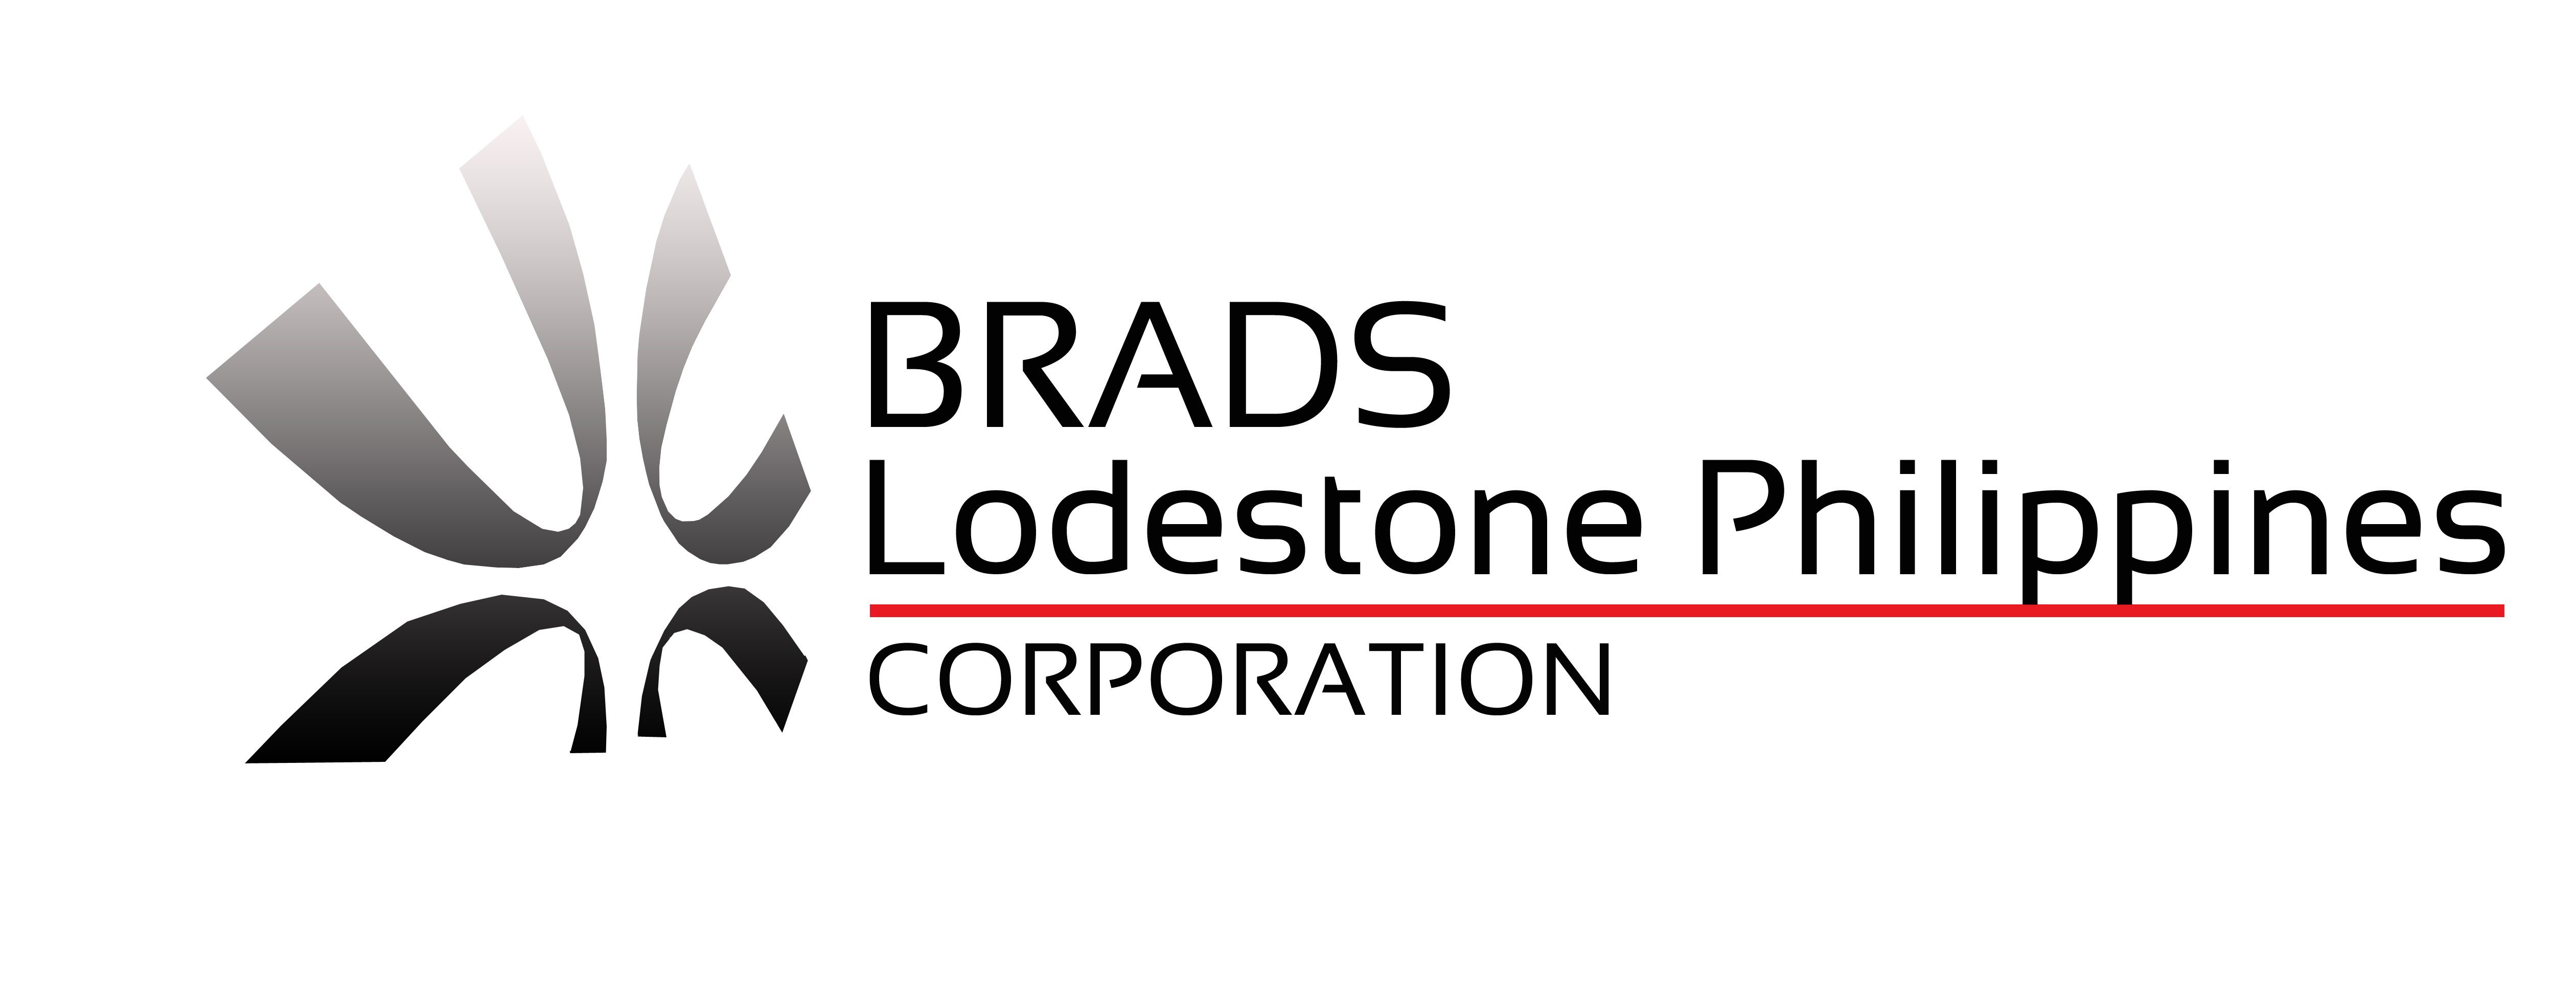 Brads Lodestone Philippines Corporation